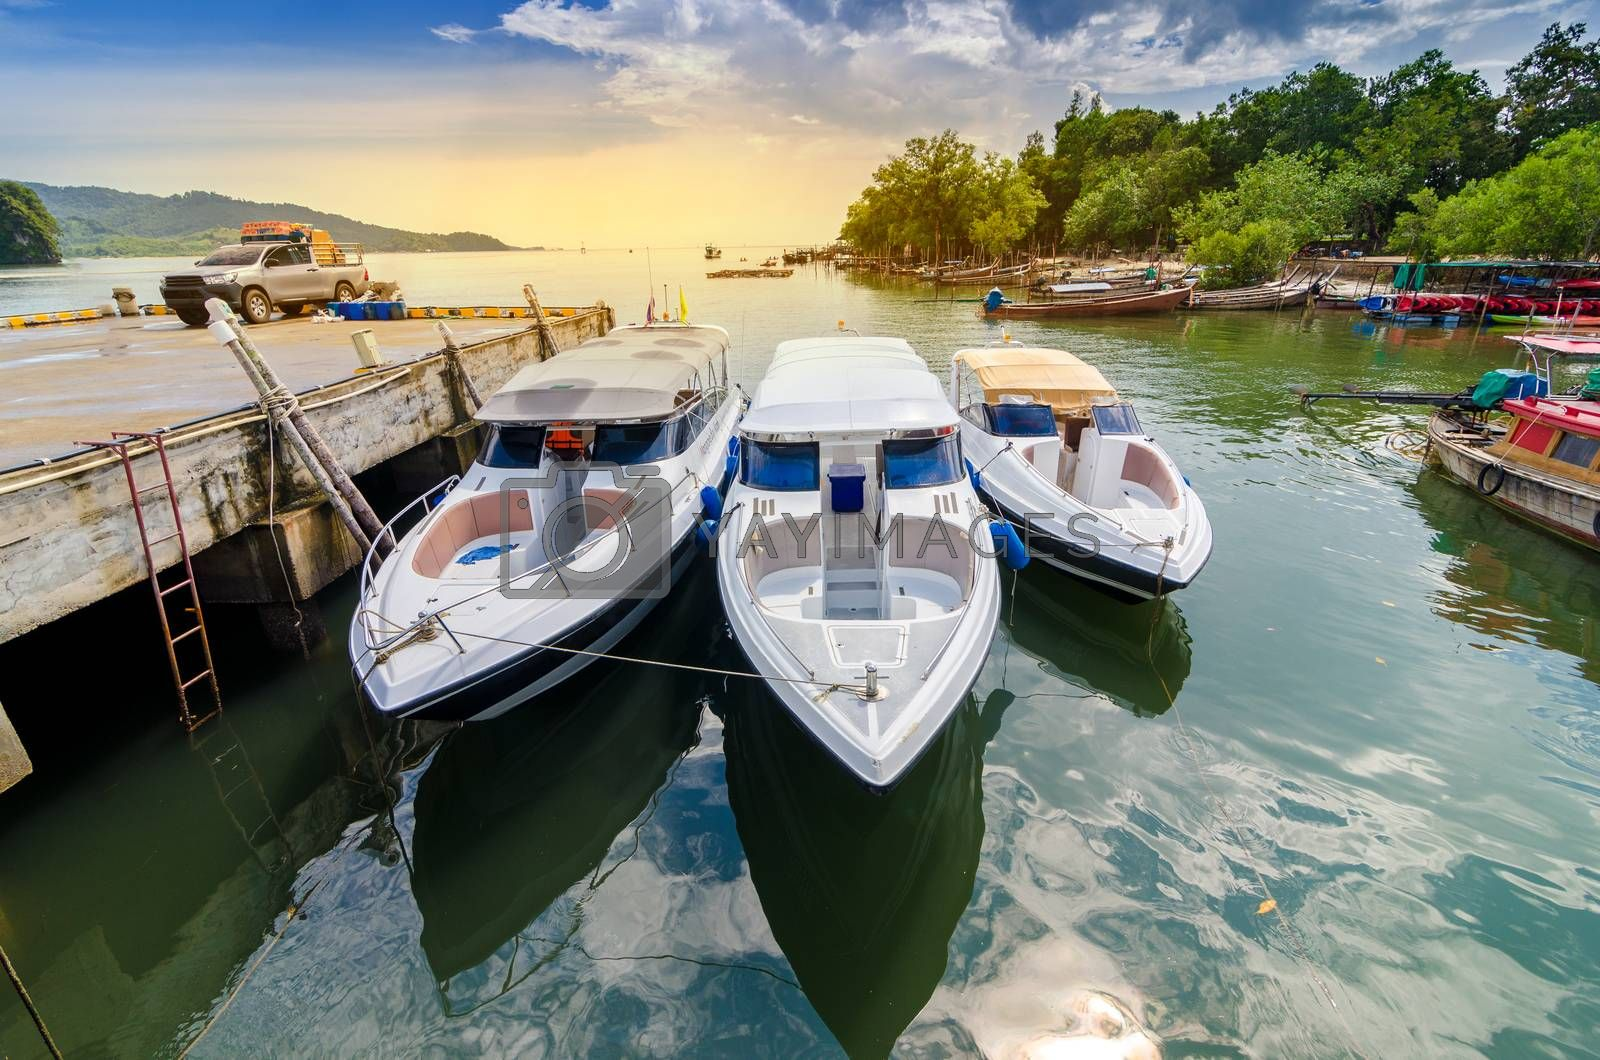 travel Speed Boat port thailand shipping location Tourist boat to island in Thailand In the bright blue days by Sarayut